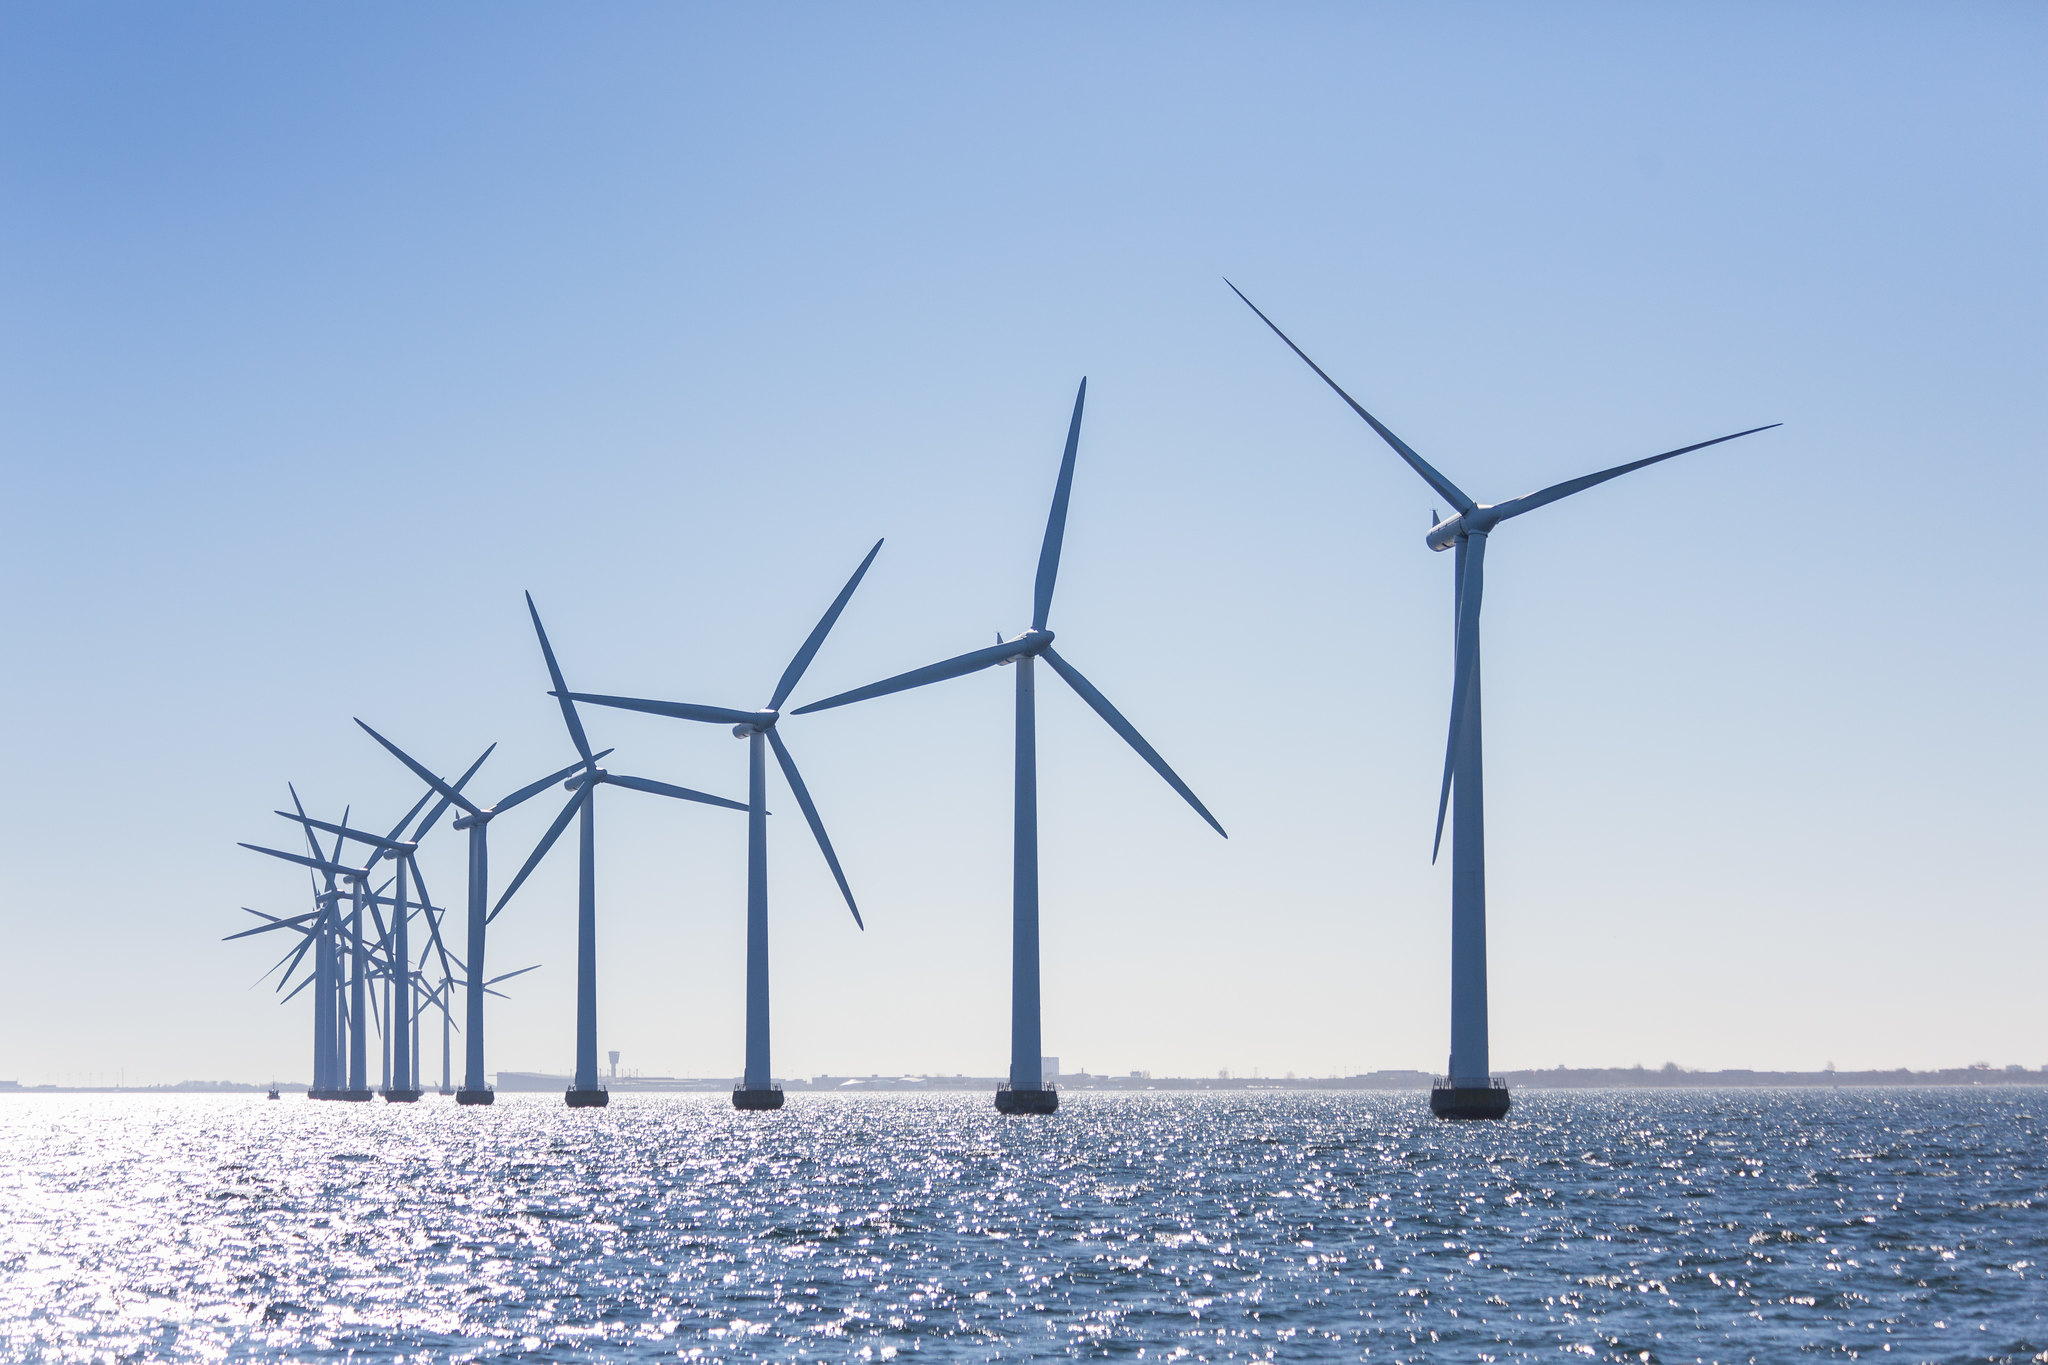 Regional Collaboration To Understand And Minimize Waterbird Impacts From Offshore Wind Energy Development